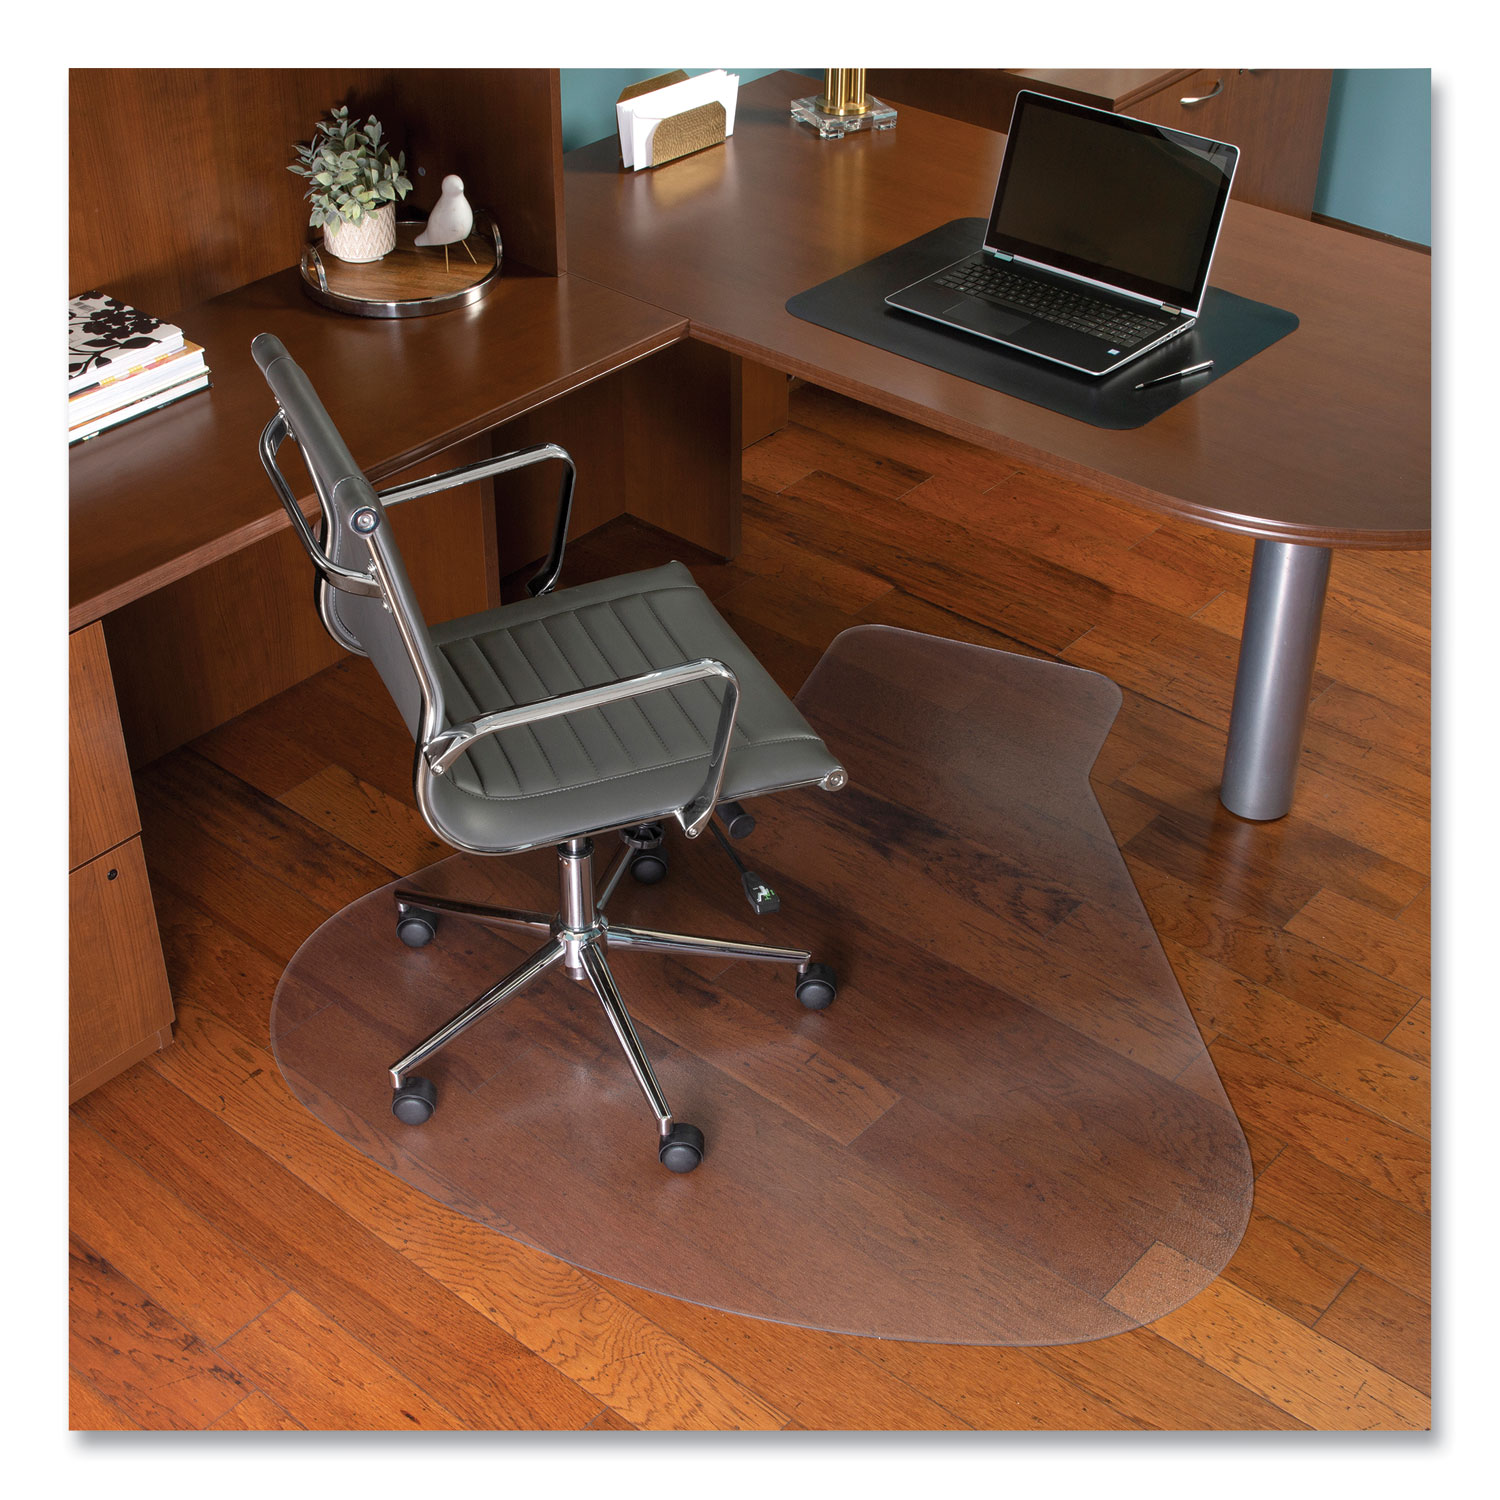 Furniture Accessories Everlife Hard Floor Office Chair Mat Office Products Rdtech Co Rw